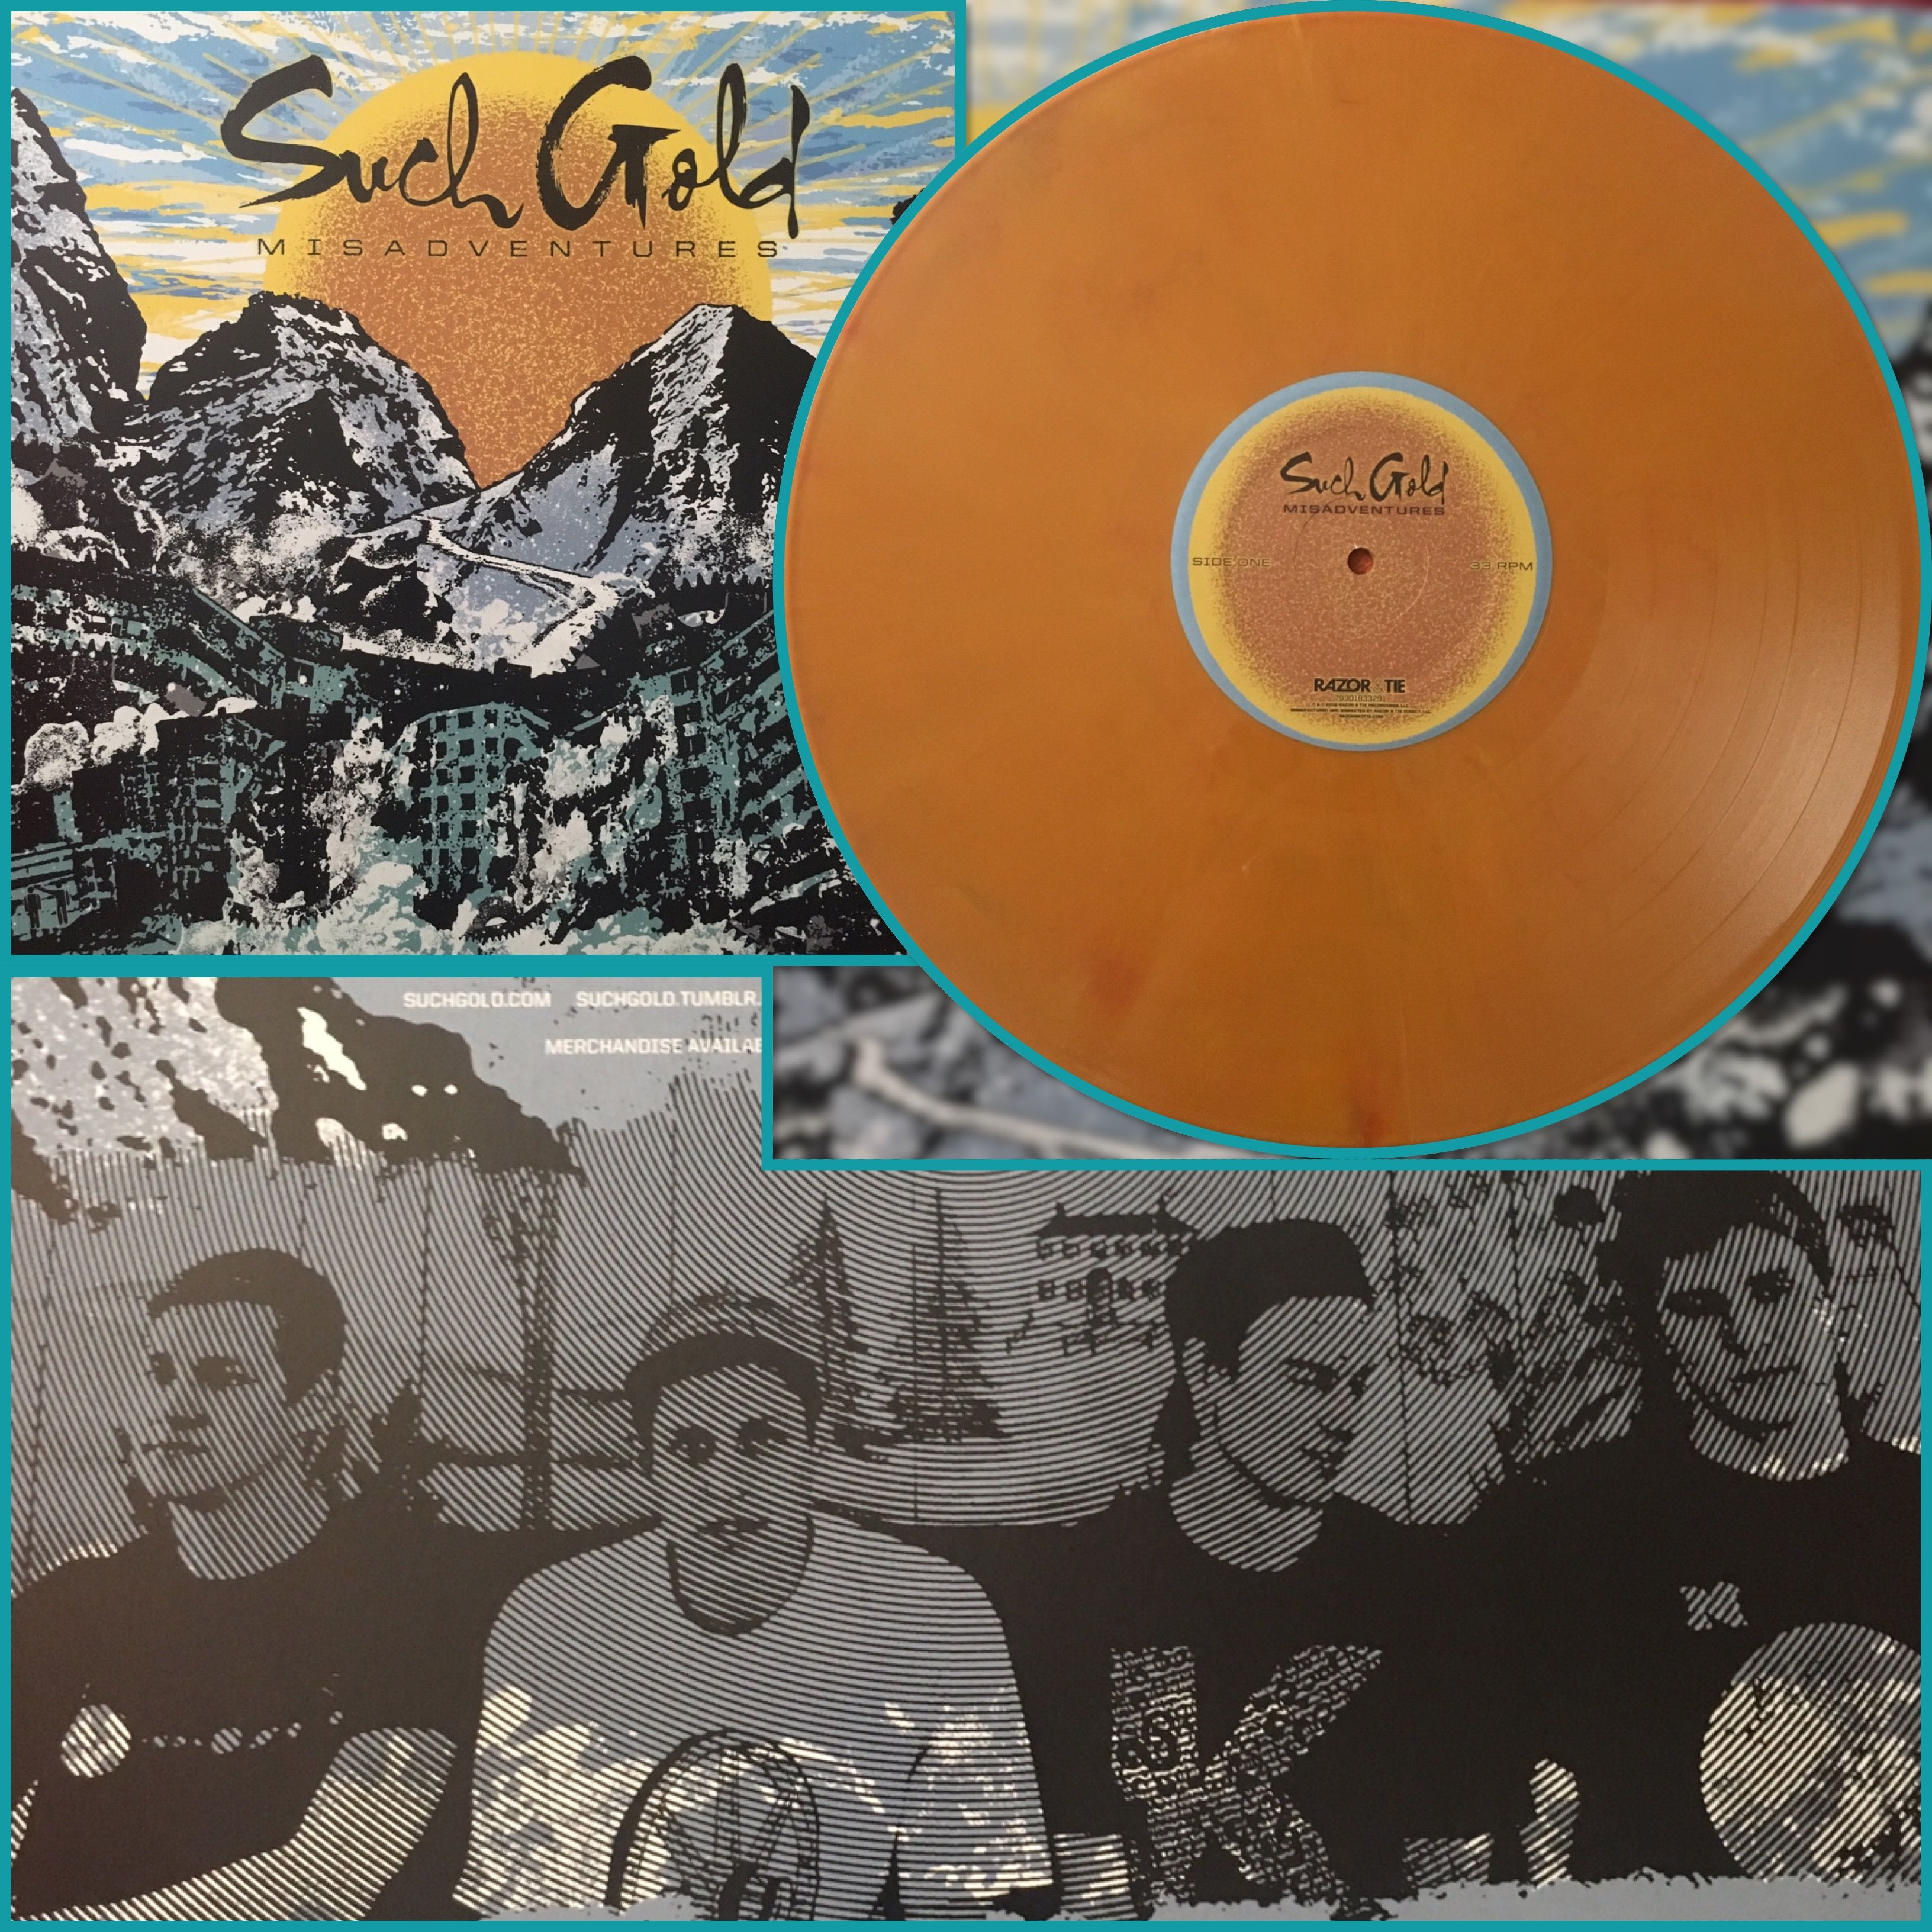 Such Gold Misadventures Orange Vinyl Pressing Record Collection Vinyl Music Record